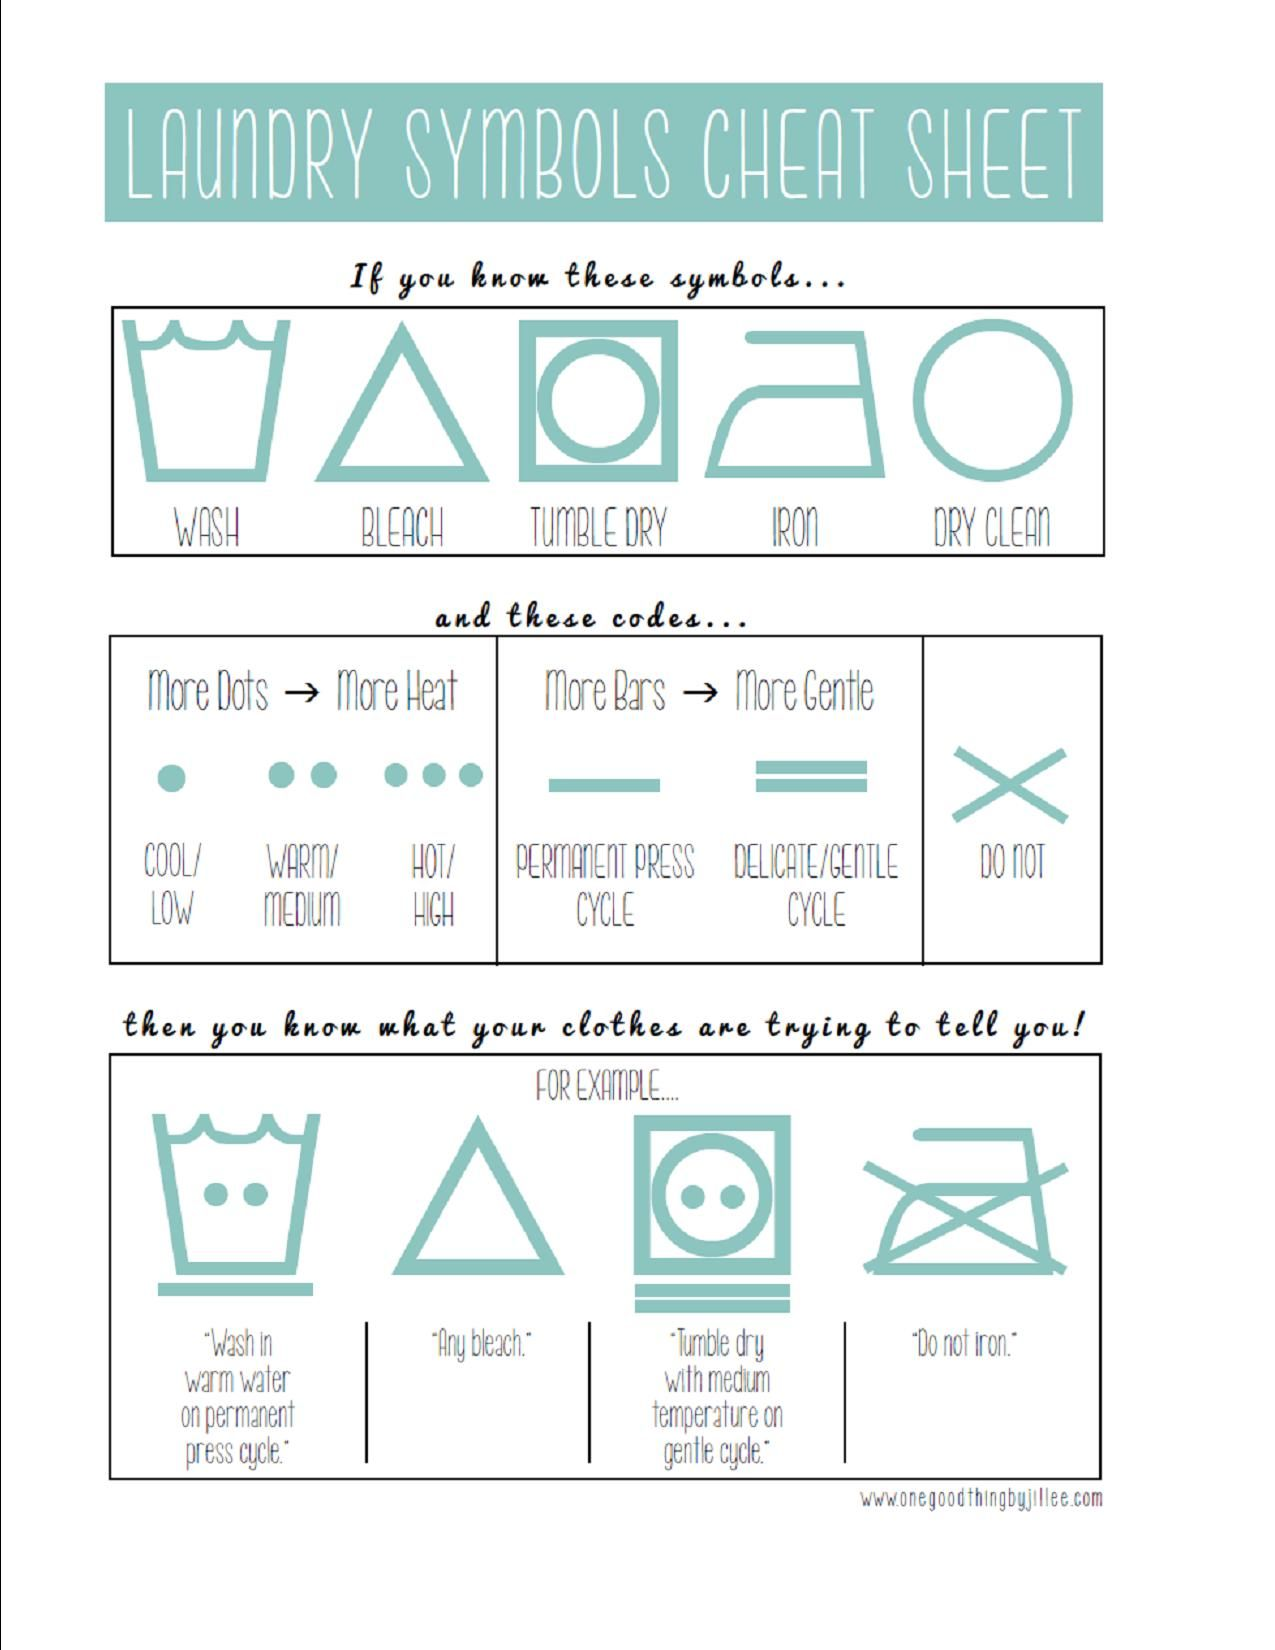 Laundry tag info good to know pinterest laundry clean laundry tag info biocorpaavc Choice Image